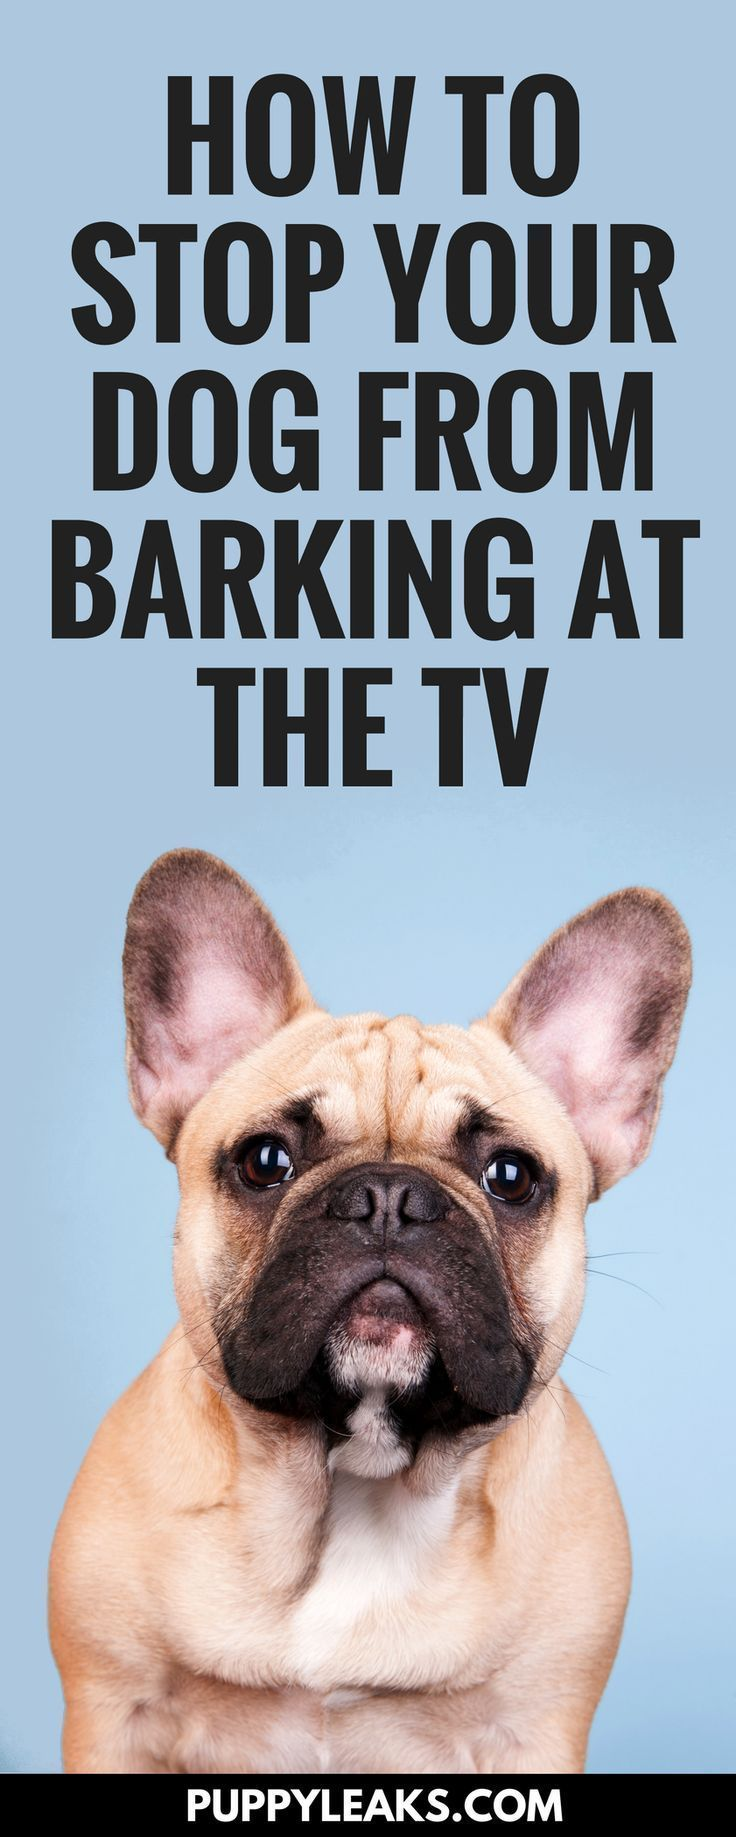 Does Your Dog Bark At The Tv Do They Get Riled Up Anytime See Or Hear An Animal On Screen You Can Stop From Barking